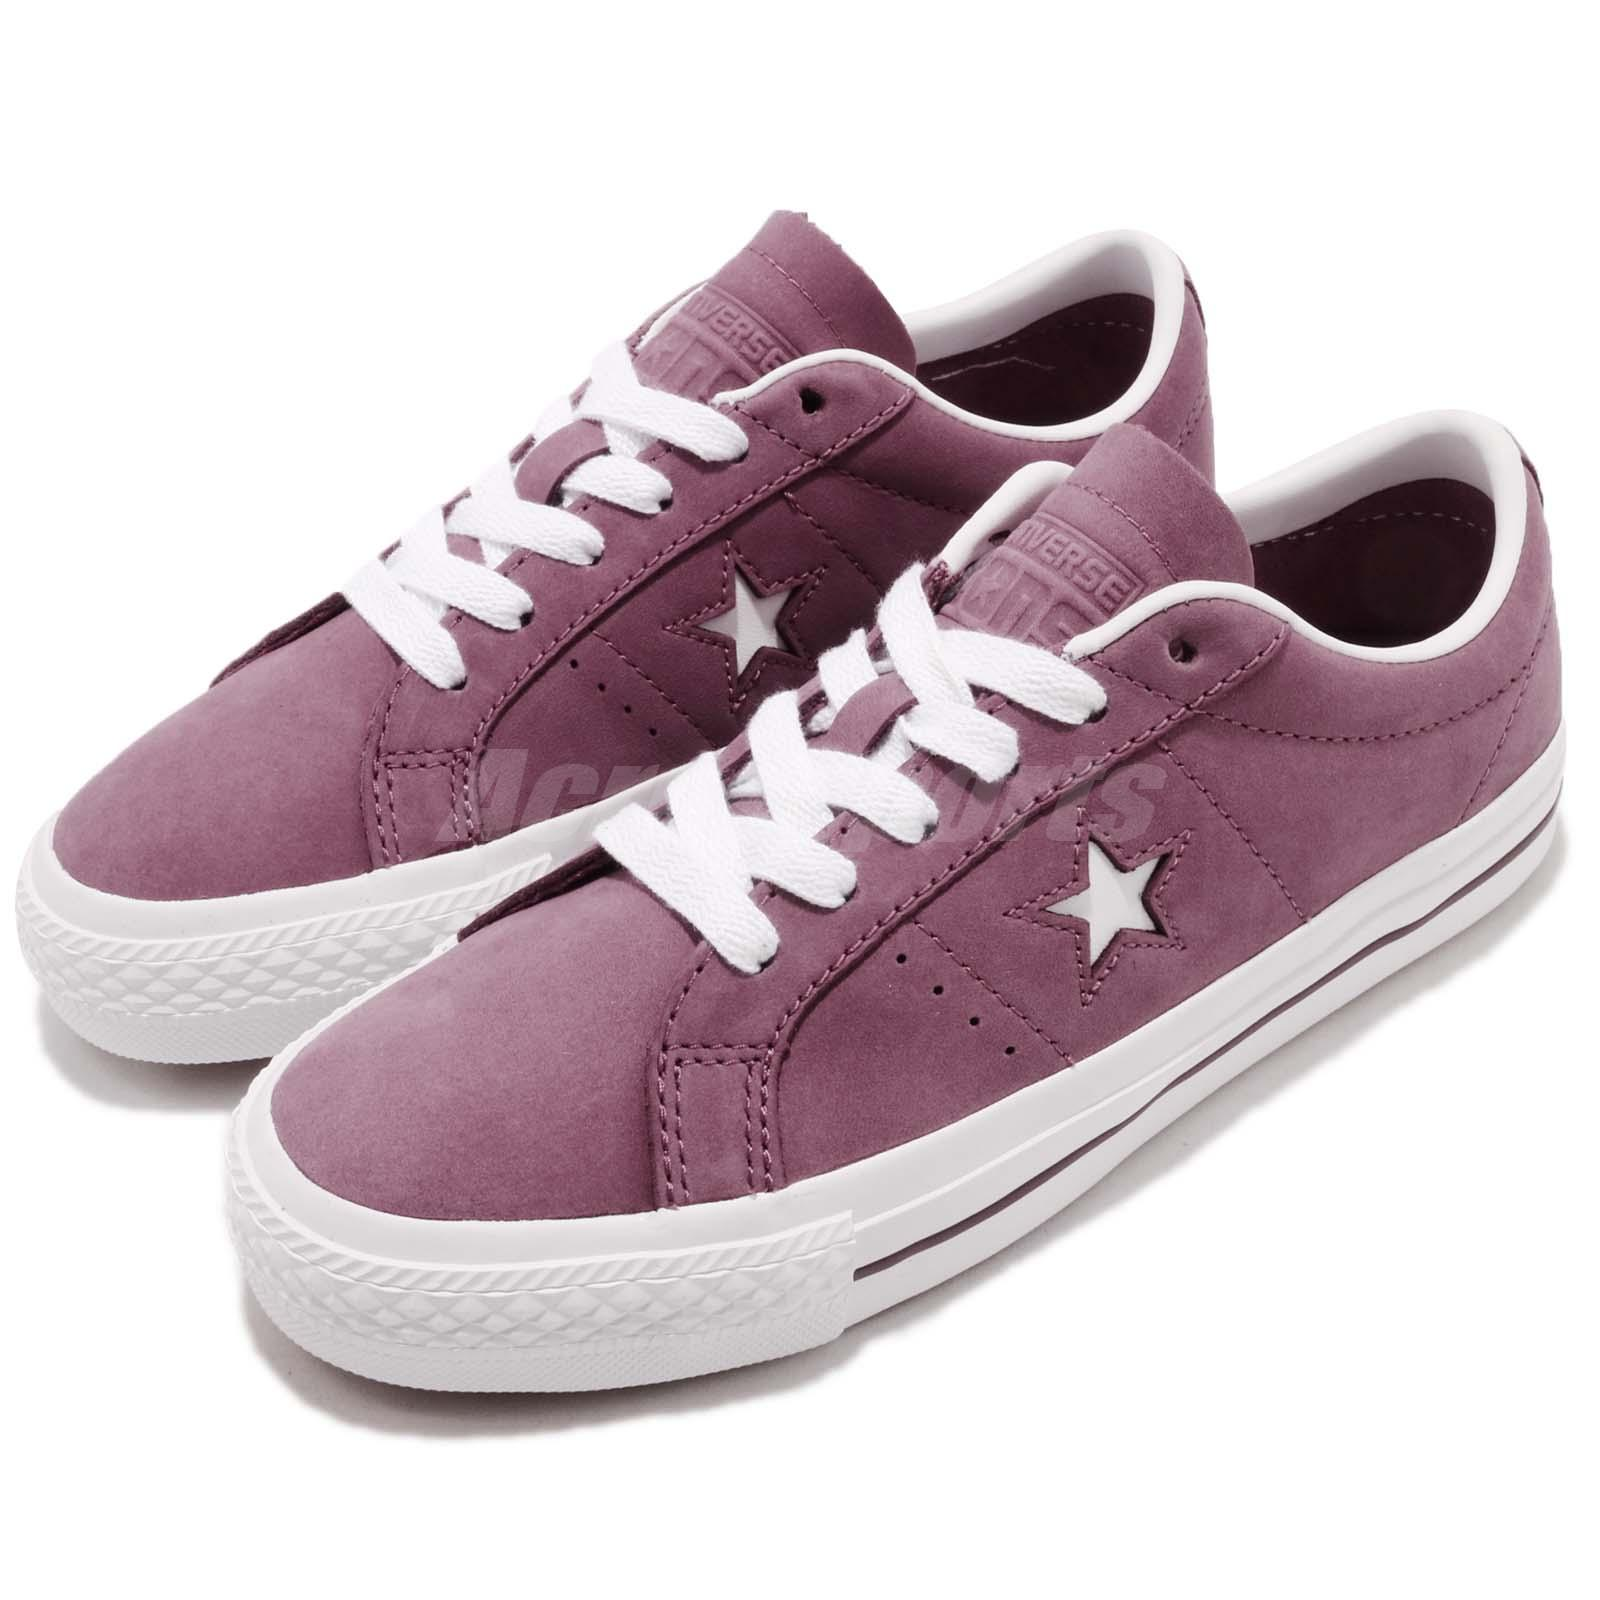 Converse One Star Pro Purple White Men Casual Classic Shoes Sneakers 160536C